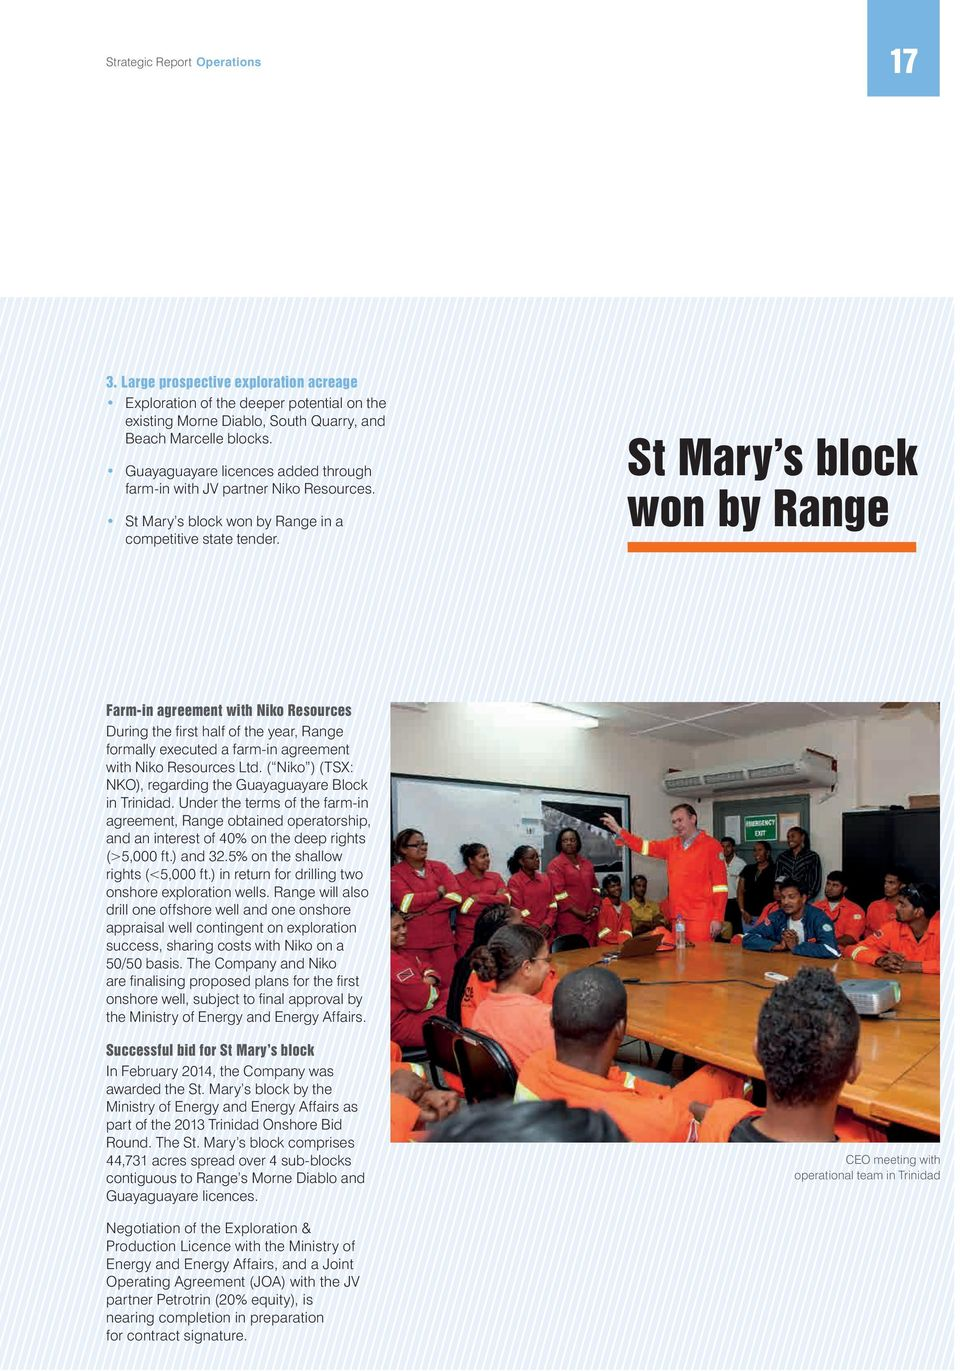 St Mary s block won by Range Farm-in agreement with Niko Resources During the first half of the year, Range formally executed a farm-in agreement with Niko Resources Ltd.